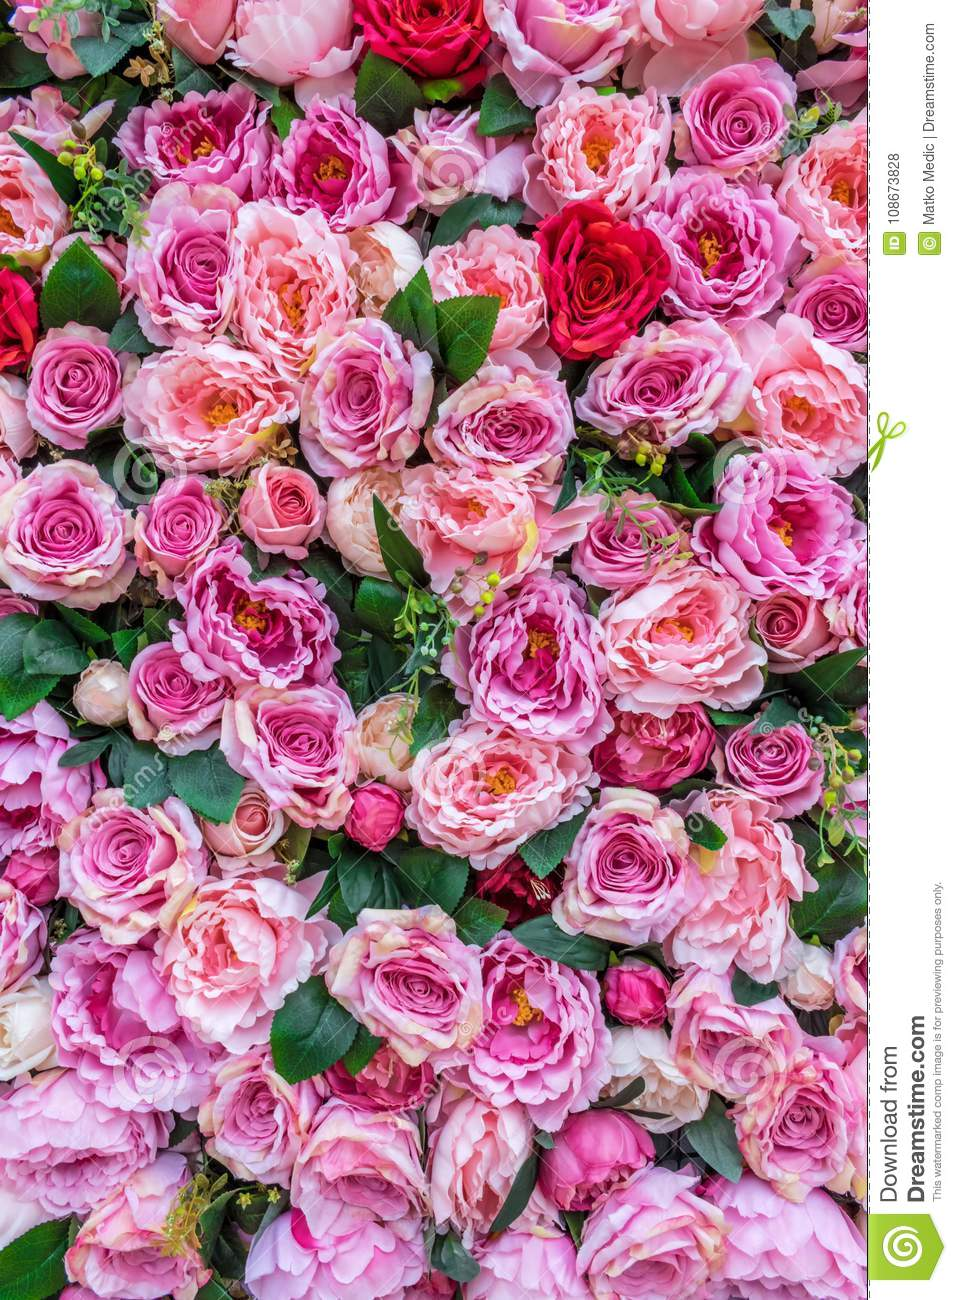 Bed Of Roses 1 Stock Photo Image Of Purple Passion 108673828